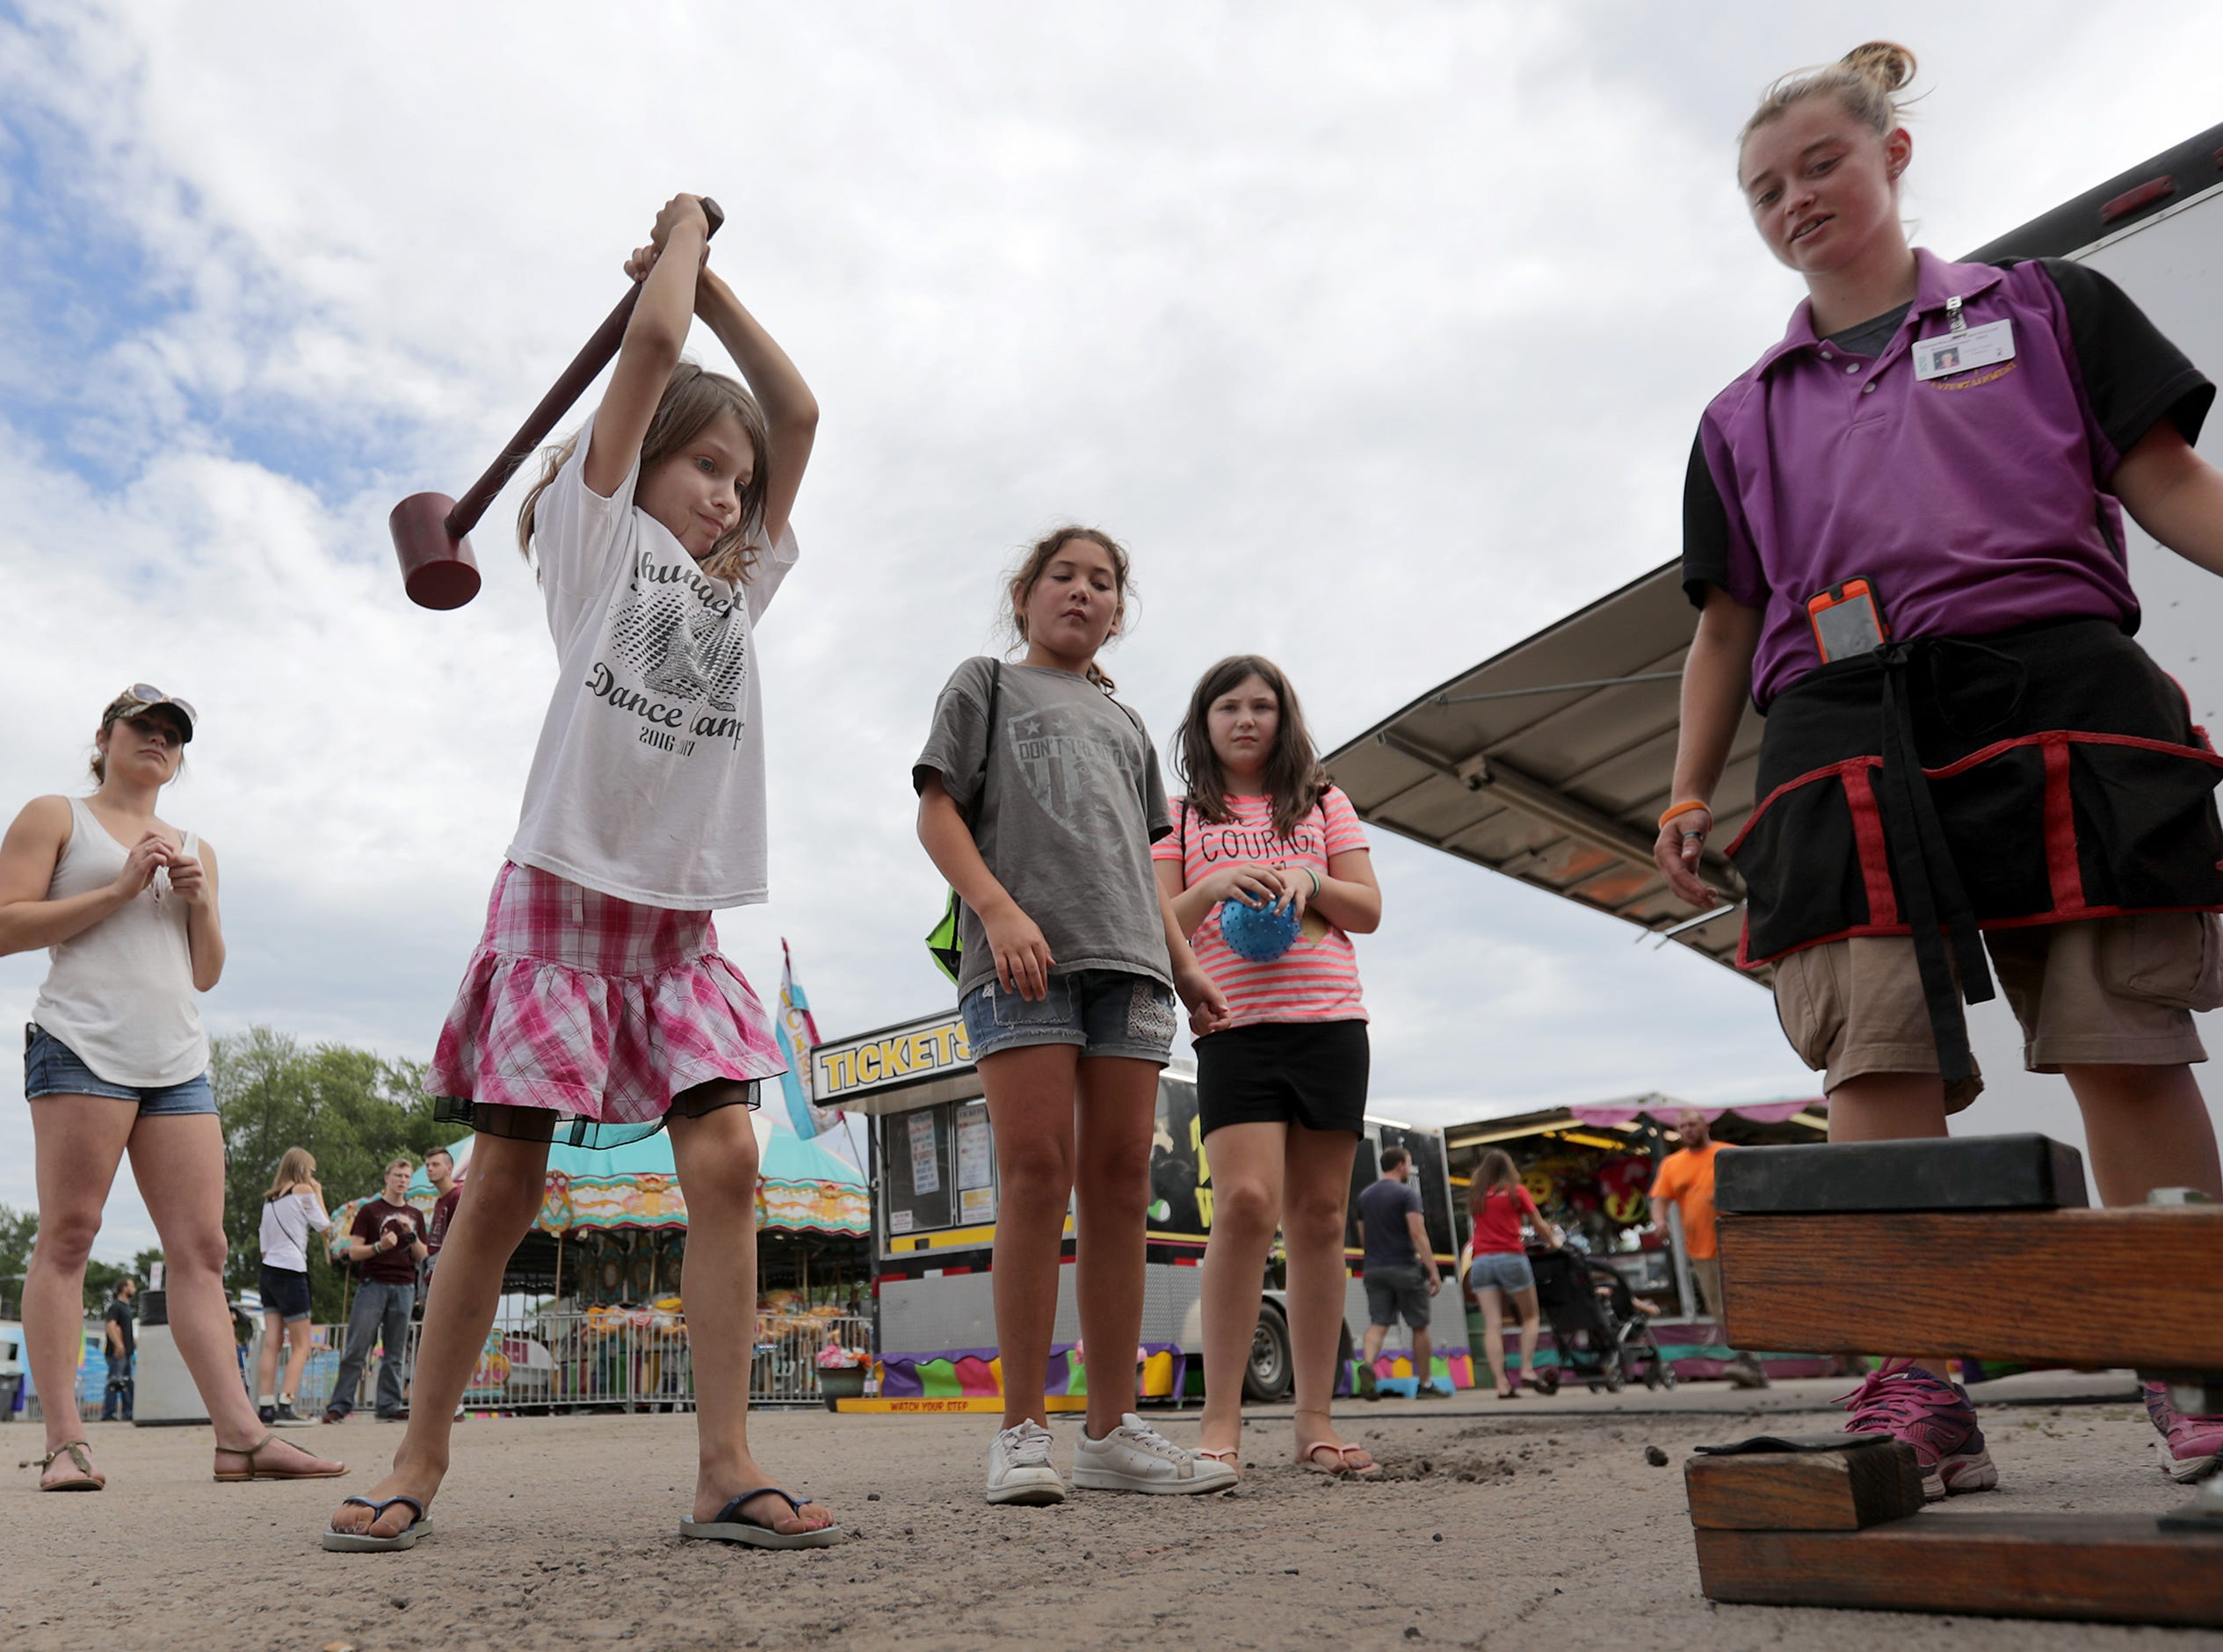 Allie Schroeder tests her strength during the Outagamie County Fair on Wednesday, July 25, 2018 in Seymour, Wis. Wm. Glasheen/USA TODAY NETWORK-Wisconsin